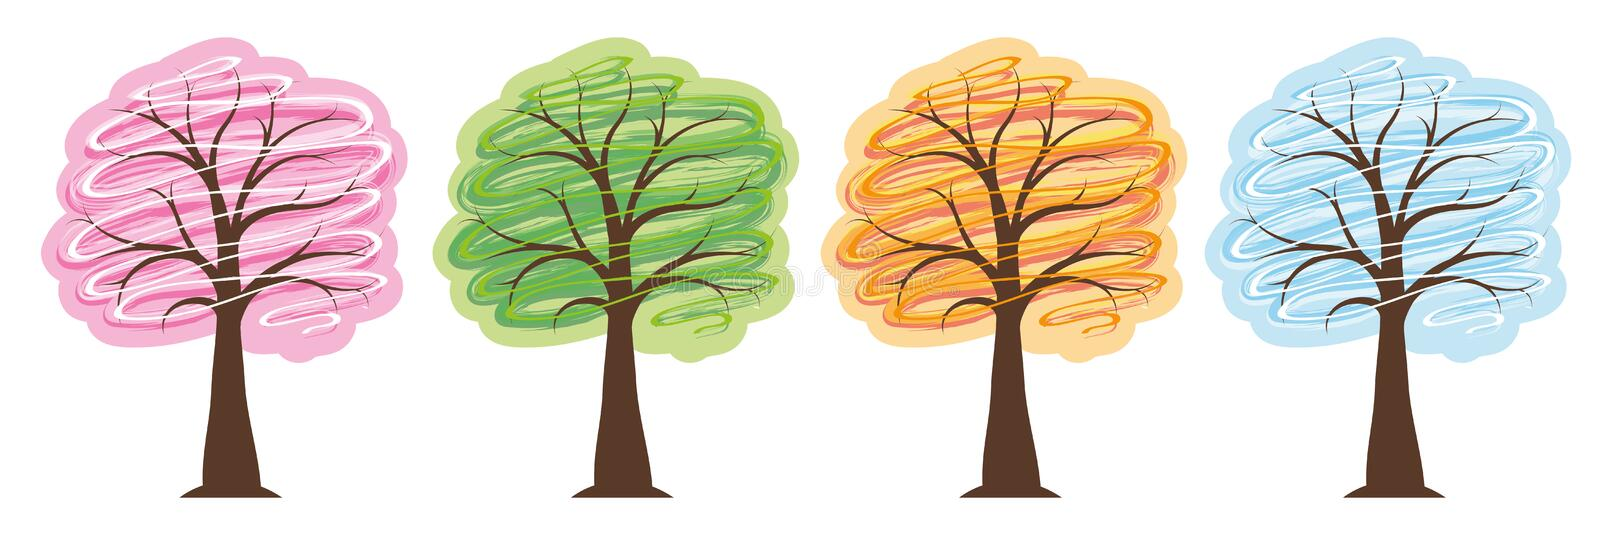 Trees four seasons in bright colors spring summer autumn winter royalty free illustration